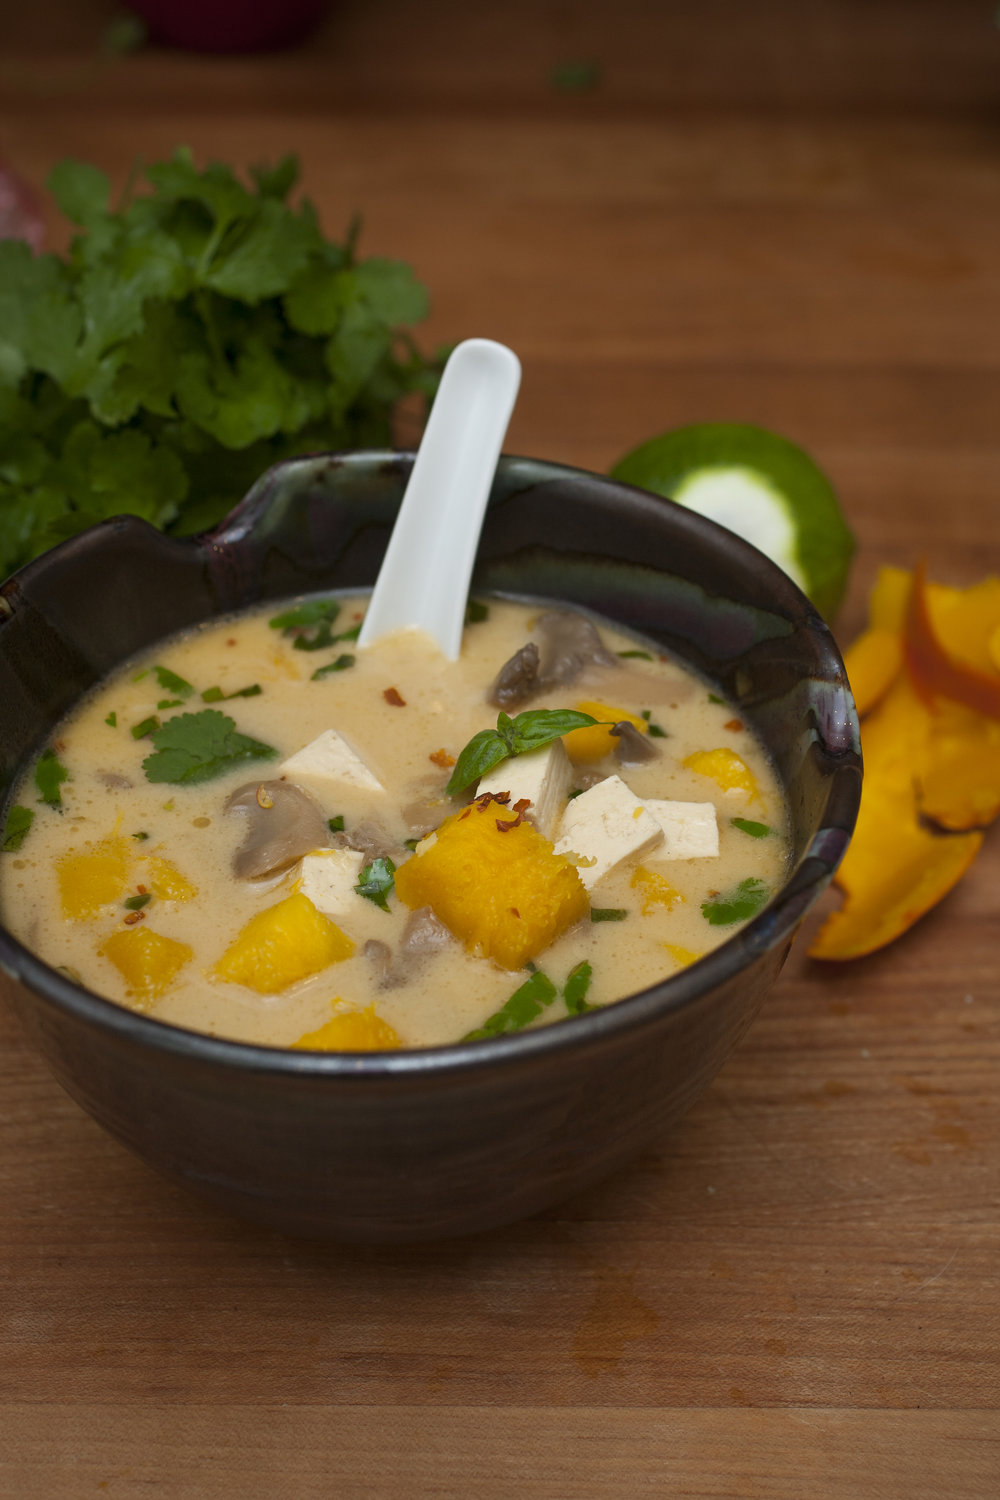 Produce On Parade- Pumpkin Tom Kha (Coconut Lemongrass Soup) - This soup is inspired by the Lao Pumpkin and Coconut Tom Kha at my favorite local restaurant, Pho Lena, in Anchorage. It's basically Tom Kha Gai without the chicken and with pumpkin instead. I add tofu for a protein boost! In Alaska, it can be difficult to find some of the very specific ingredients for Tom Kha so I've included commonplace substitutions. I have to use ginger, lime rind, and canned mushrooms because galangal, kaffir lime leaves, and straw mushrooms aren't accessible. Still, the soup is absolutely divine!